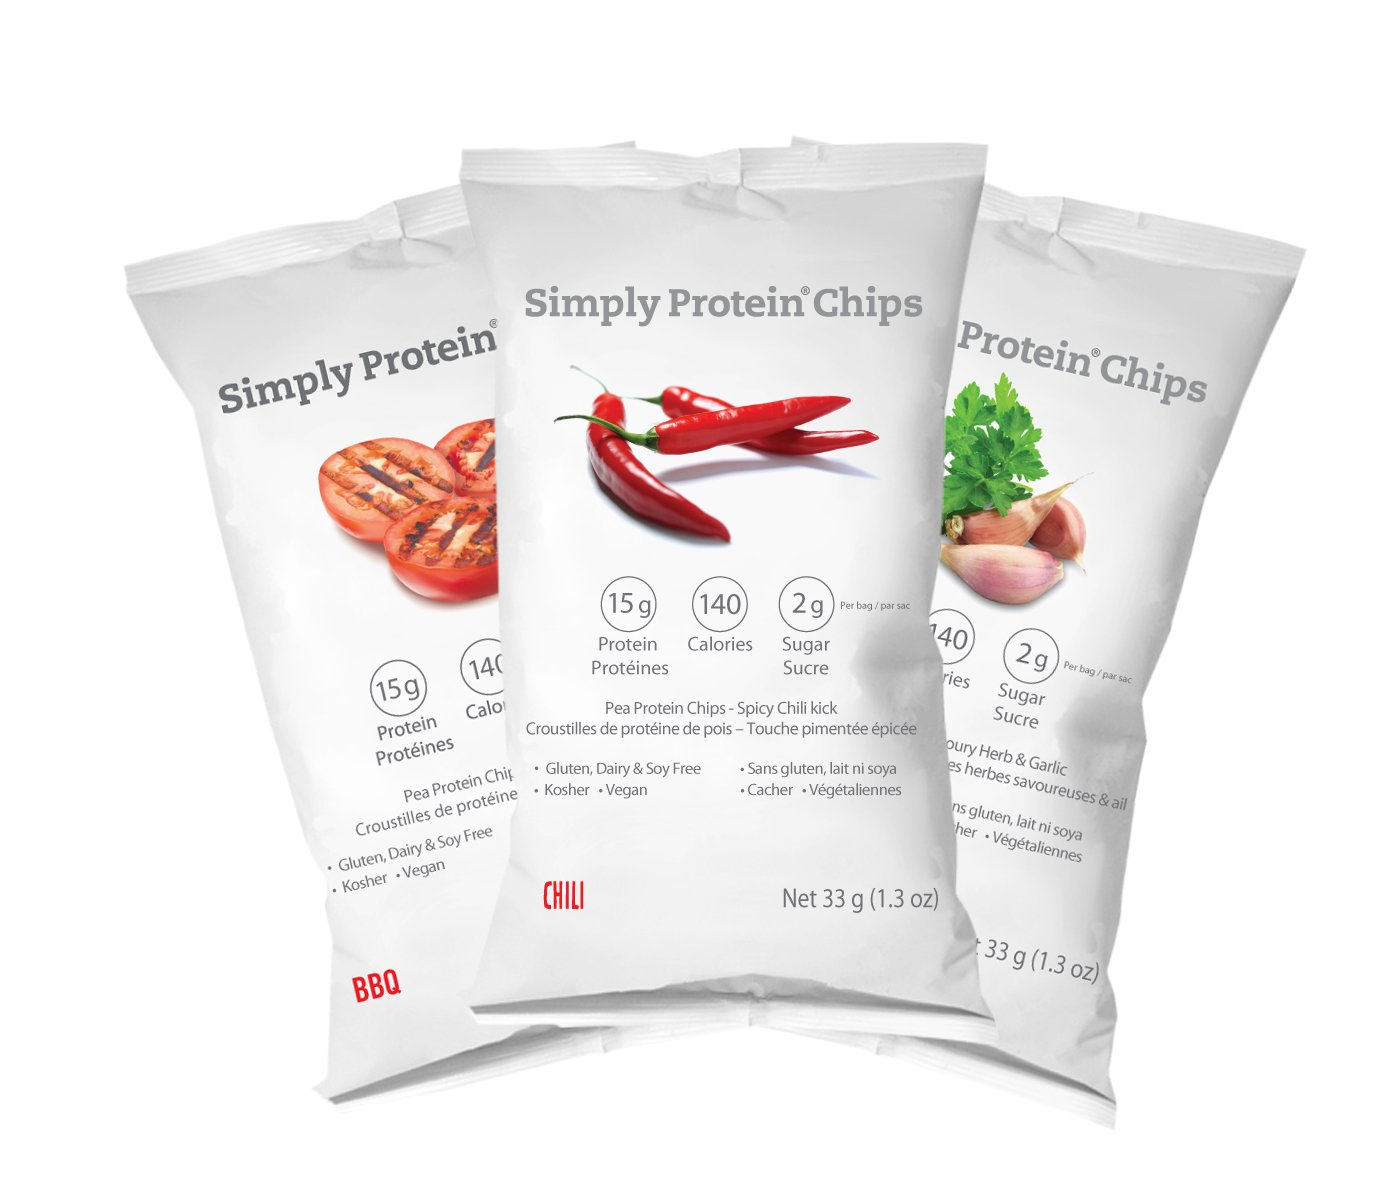 WF_Photos_SimplyProteinChips_$2.49